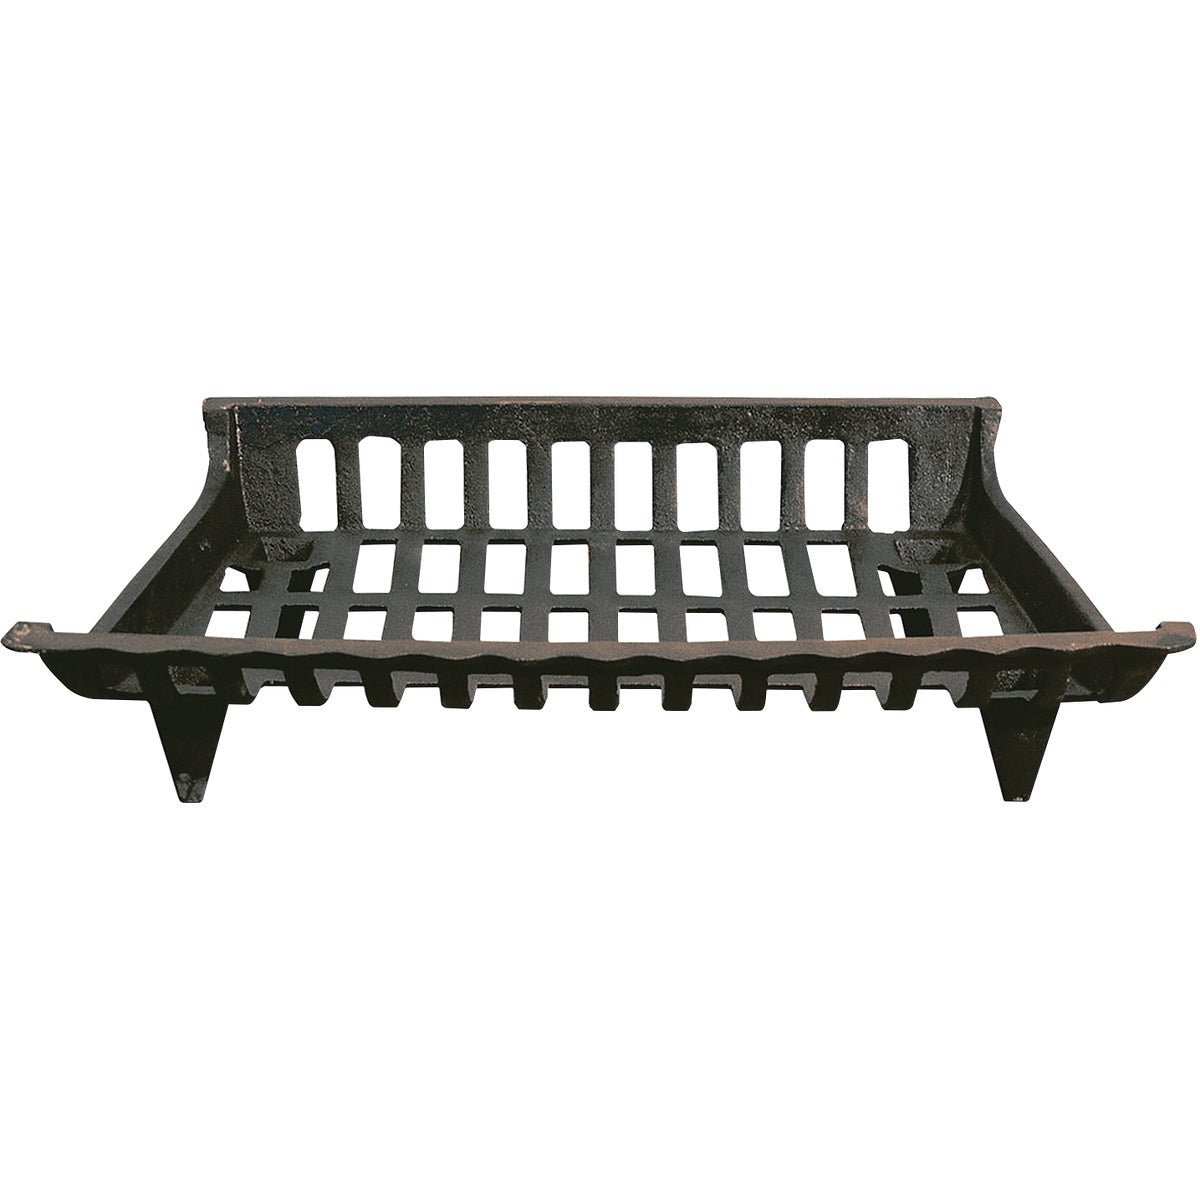 "24"" CAST IRON GRATE - 15424 by Panacea Products"